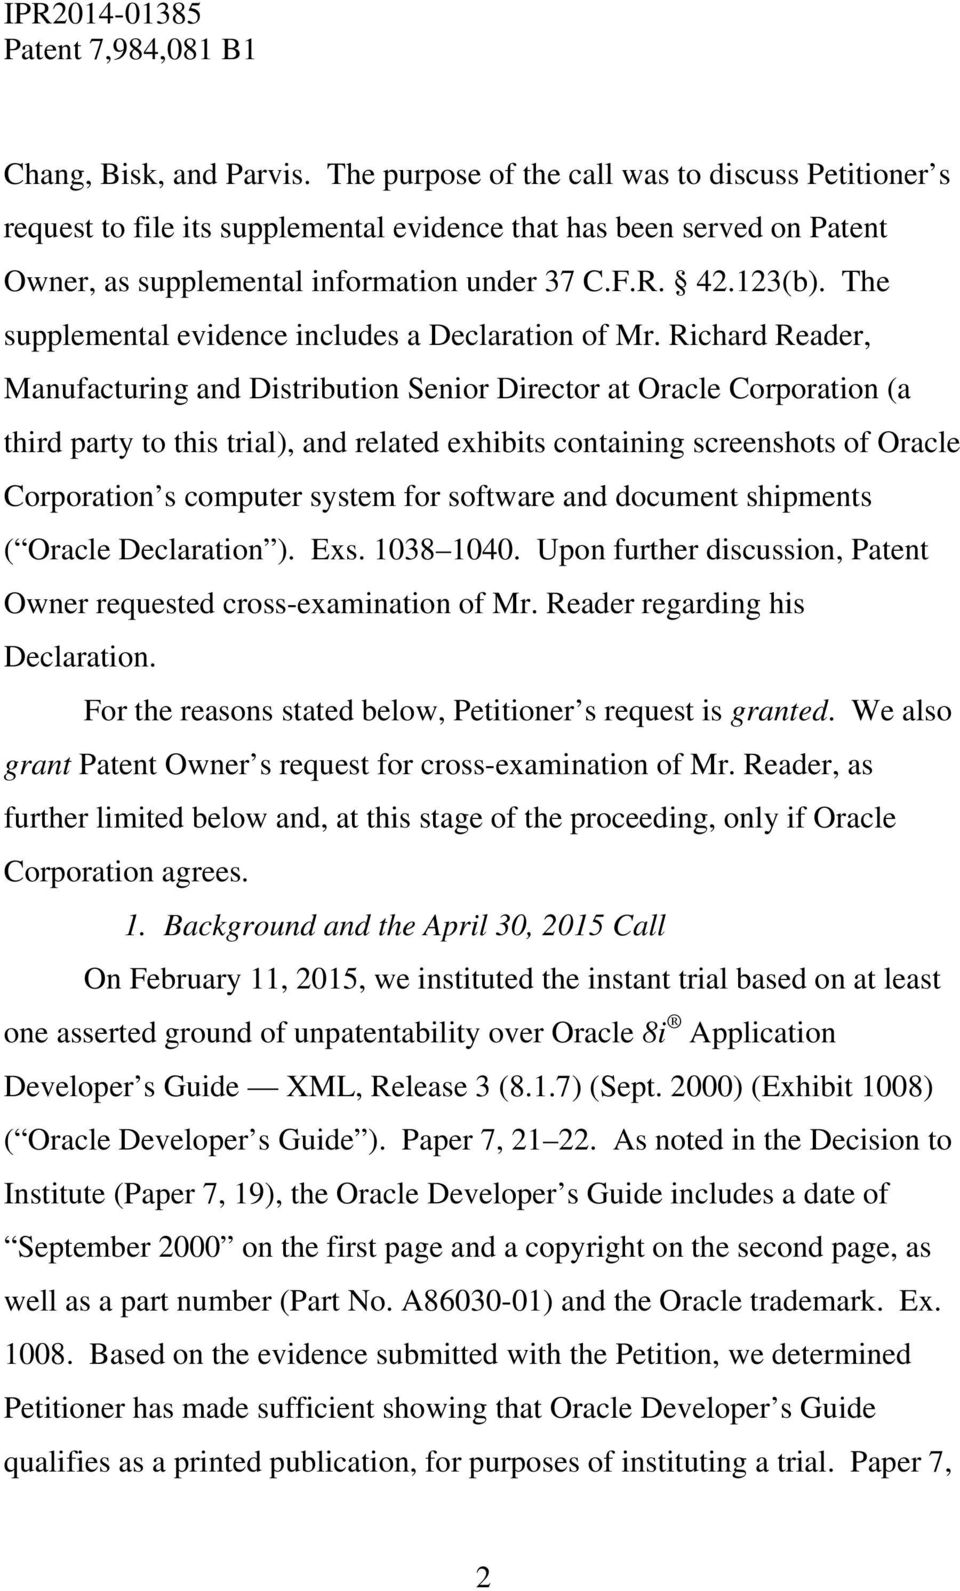 Richard Reader, Manufacturing and Distribution Senior Director at Oracle Corporation (a third party to this trial), and related exhibits containing screenshots of Oracle Corporation s computer system